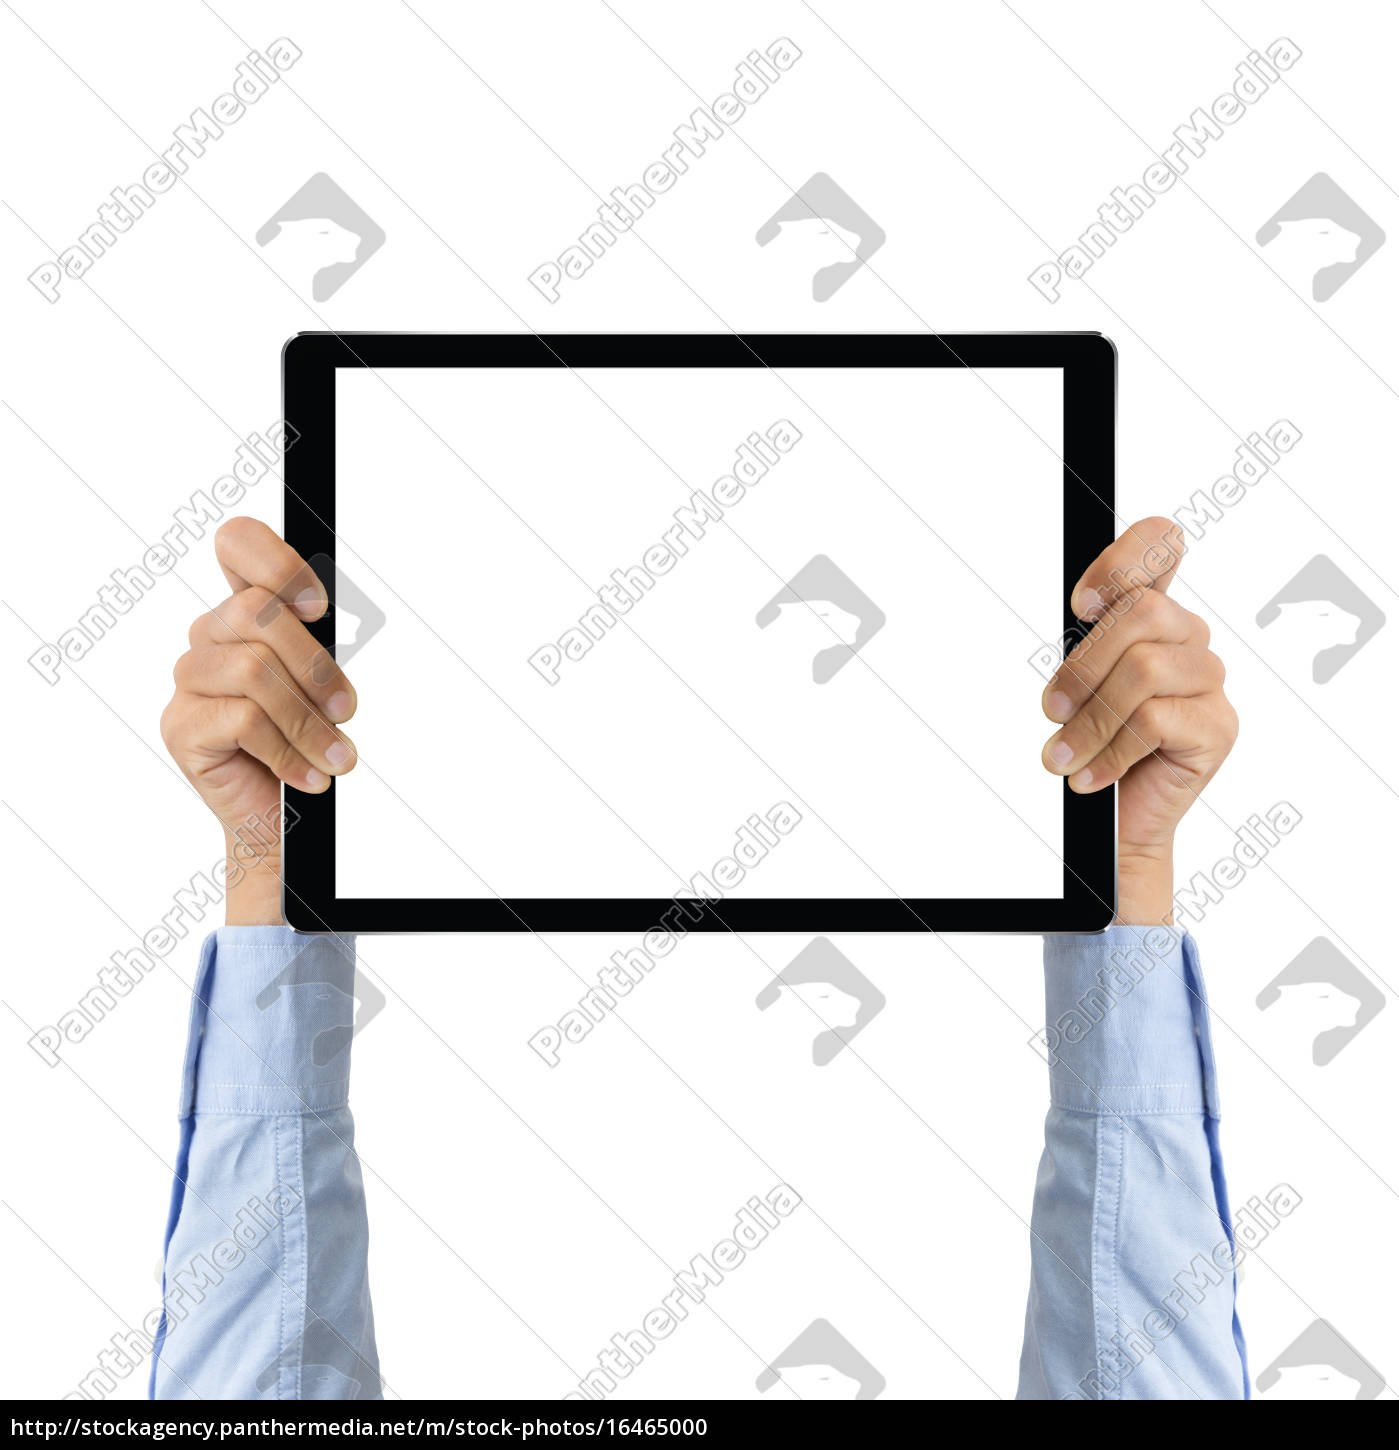 business, hand, holding, tablet, showing, screen - 16465000